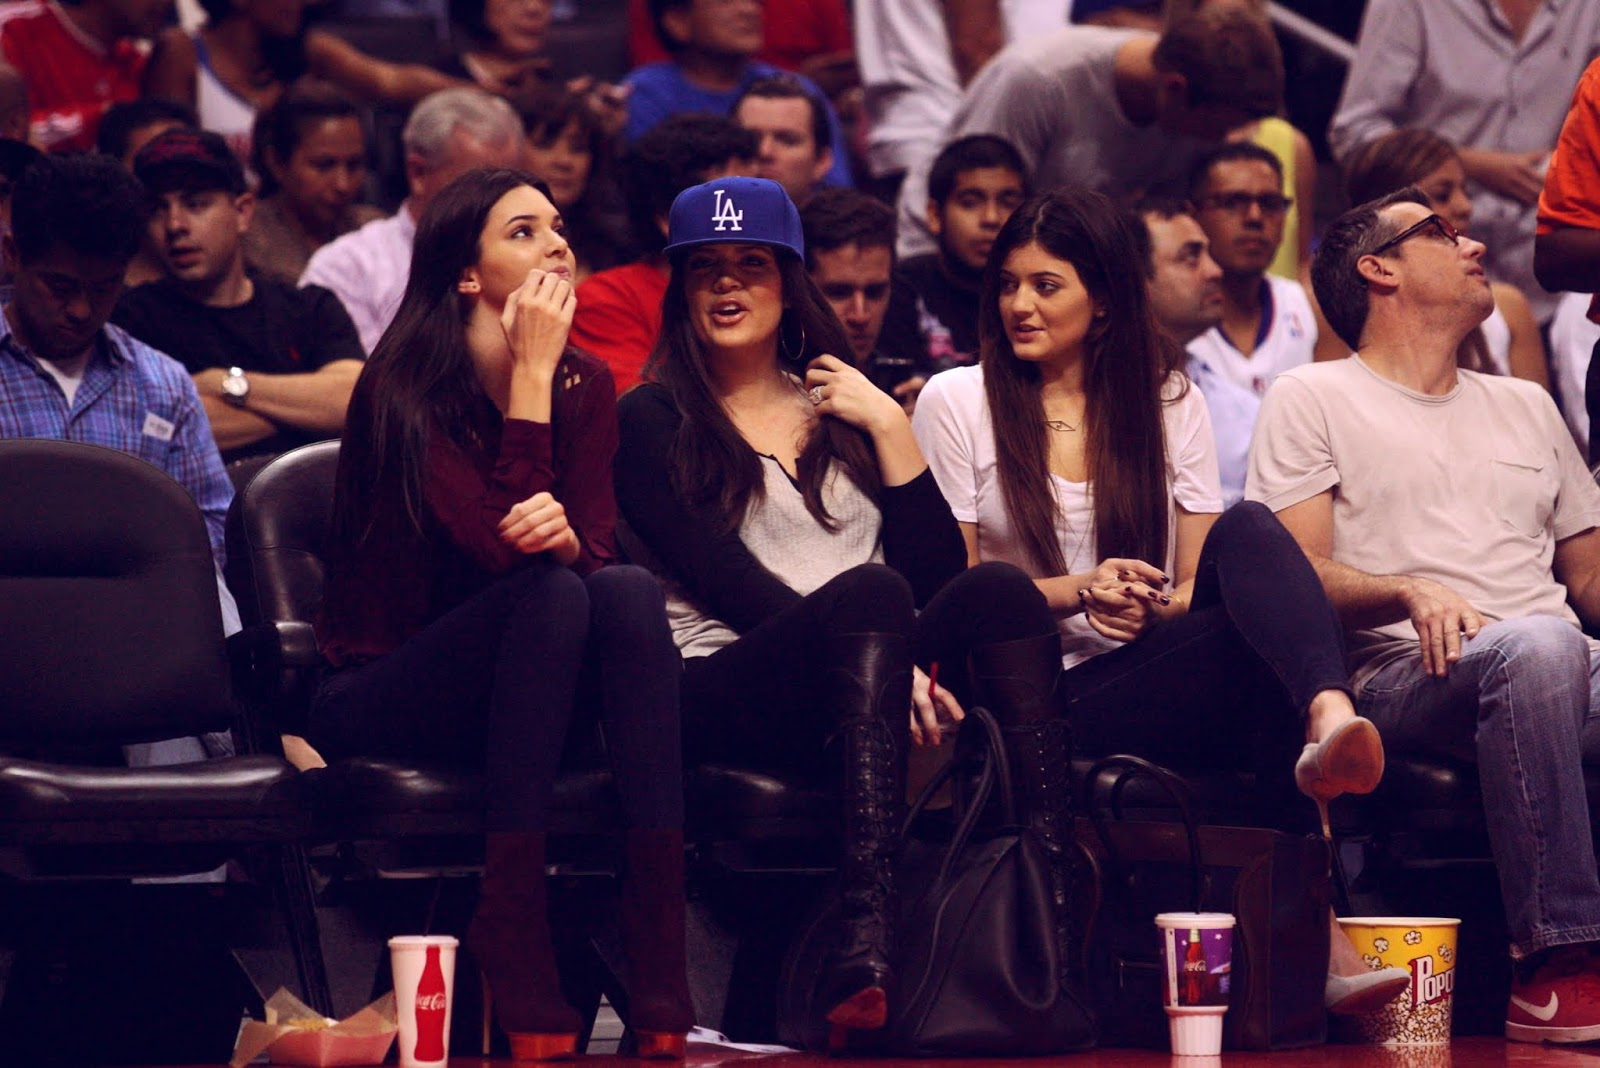 07 - Watching The Los Angeles Clippers Game on October 17, 2012